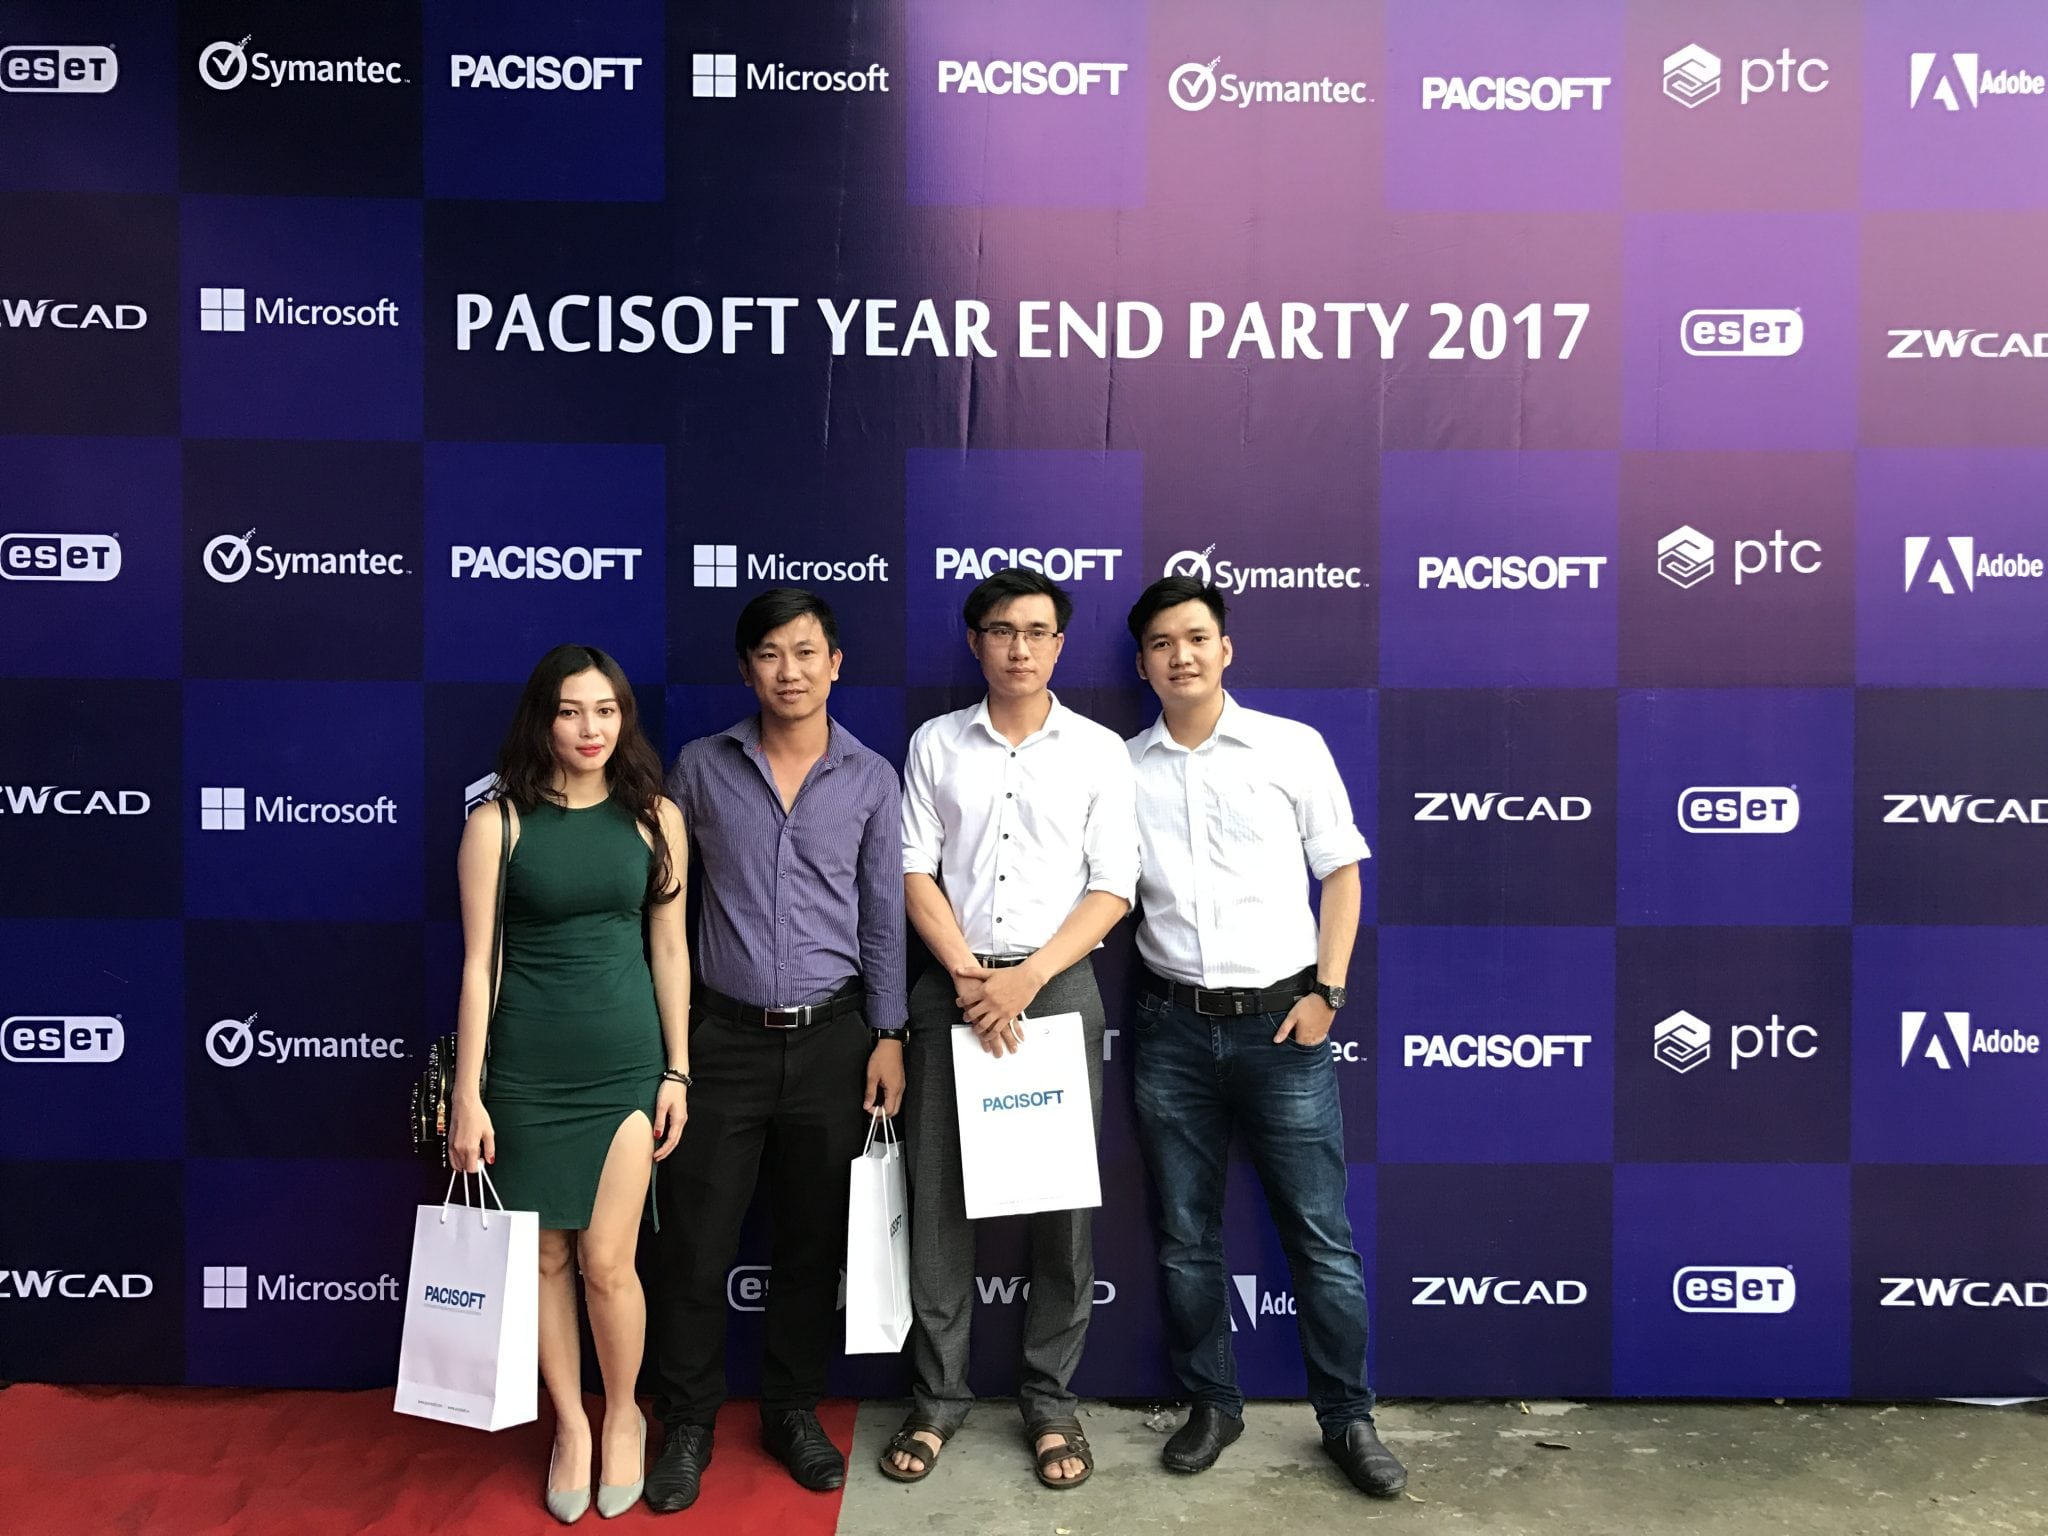 pacisoft year end party 2017